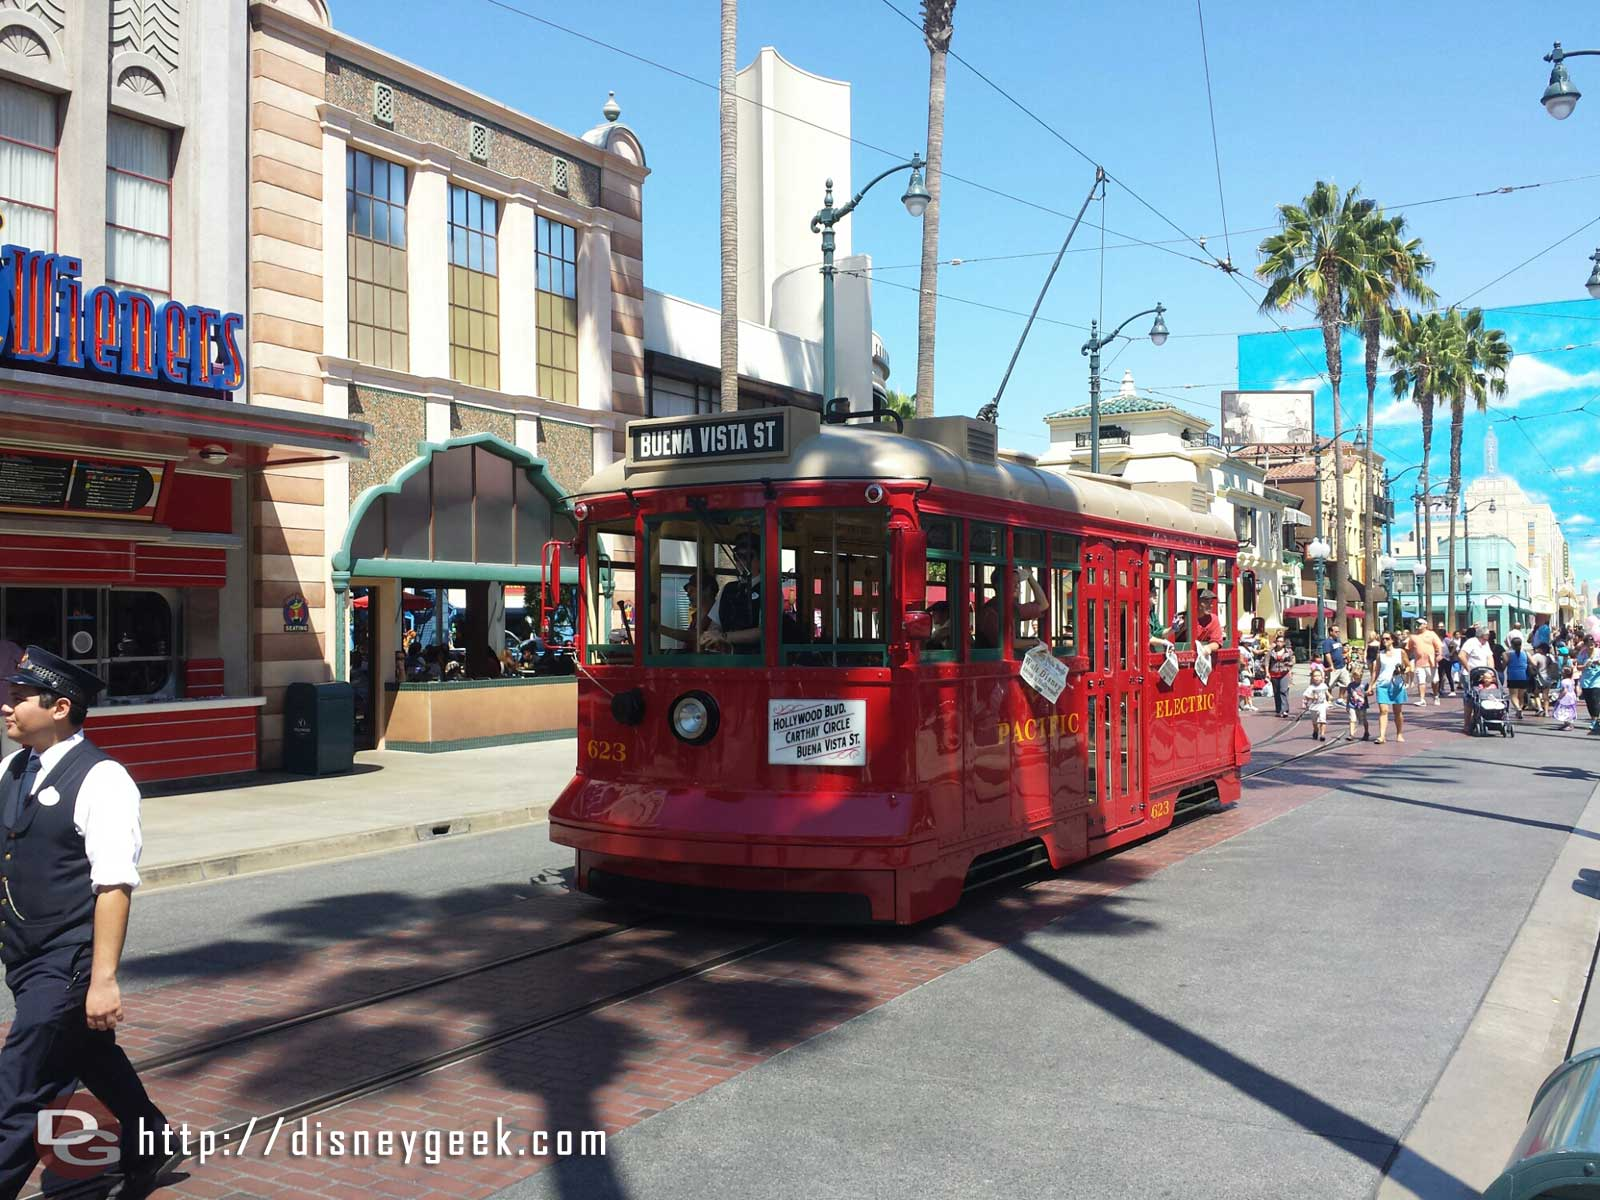 The Red Car News Boys heading to Carthay Circle for a performance